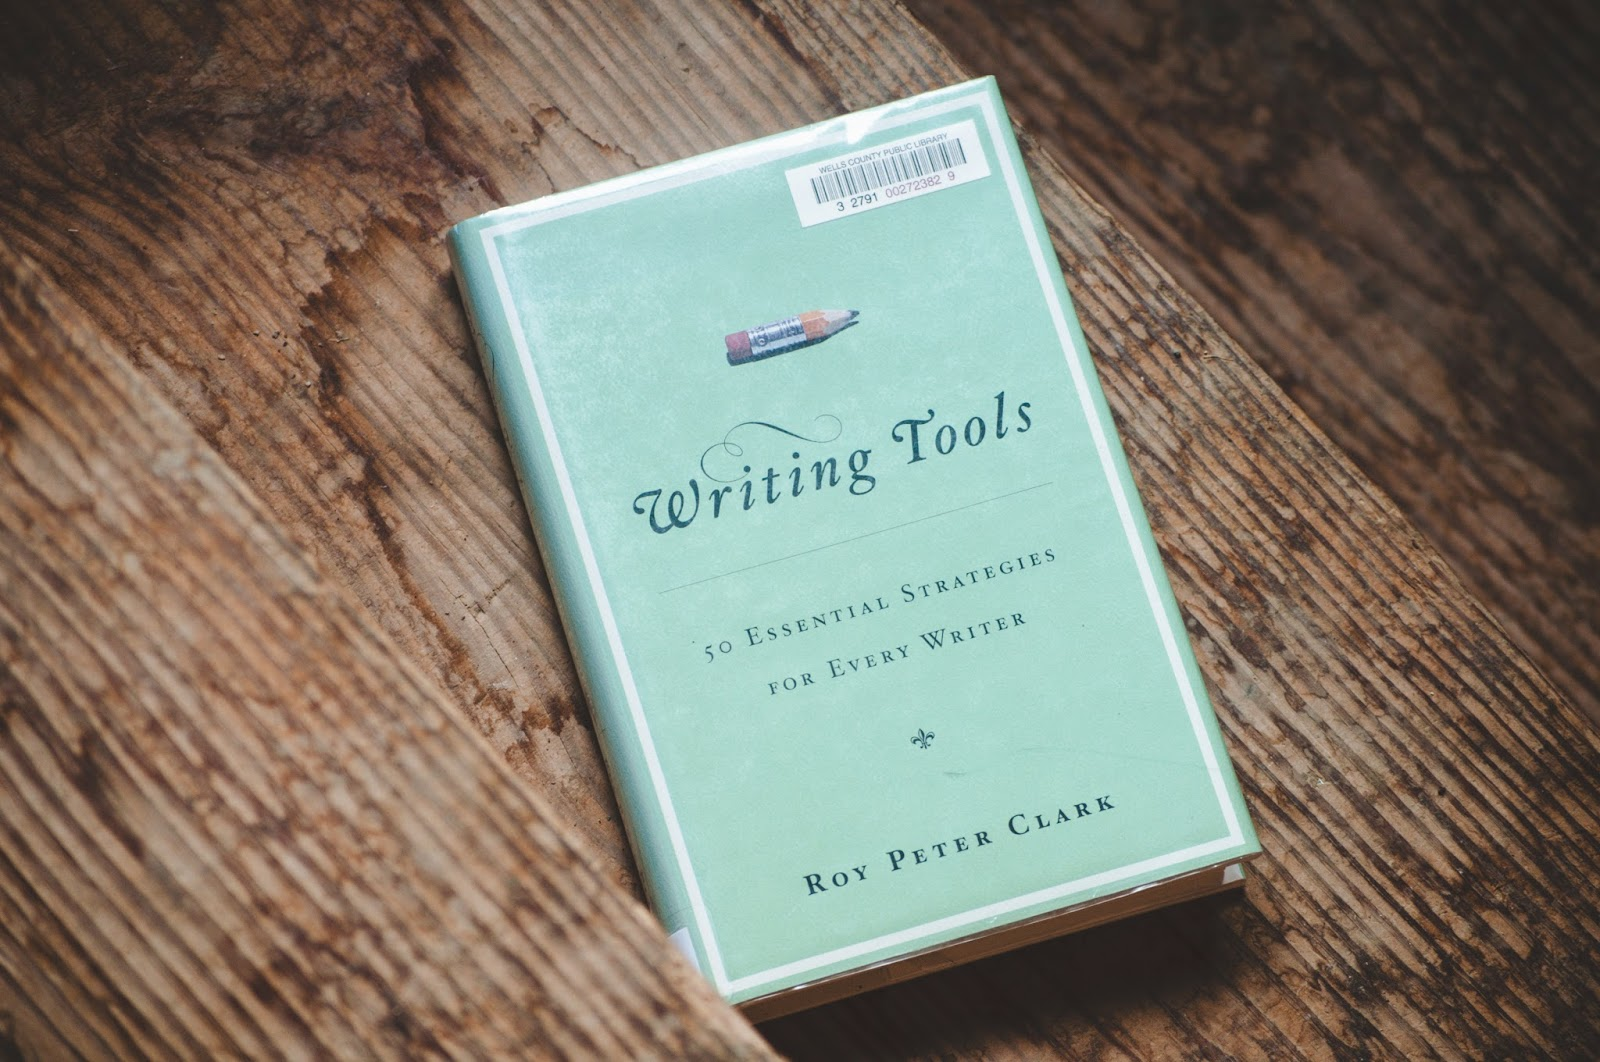 writing tools 50 essential strategies for every writer Covering the writing waterfront-from basics on verb tense to the value of forming a support group-poynter institute vice president clark offers tips, tricks and.